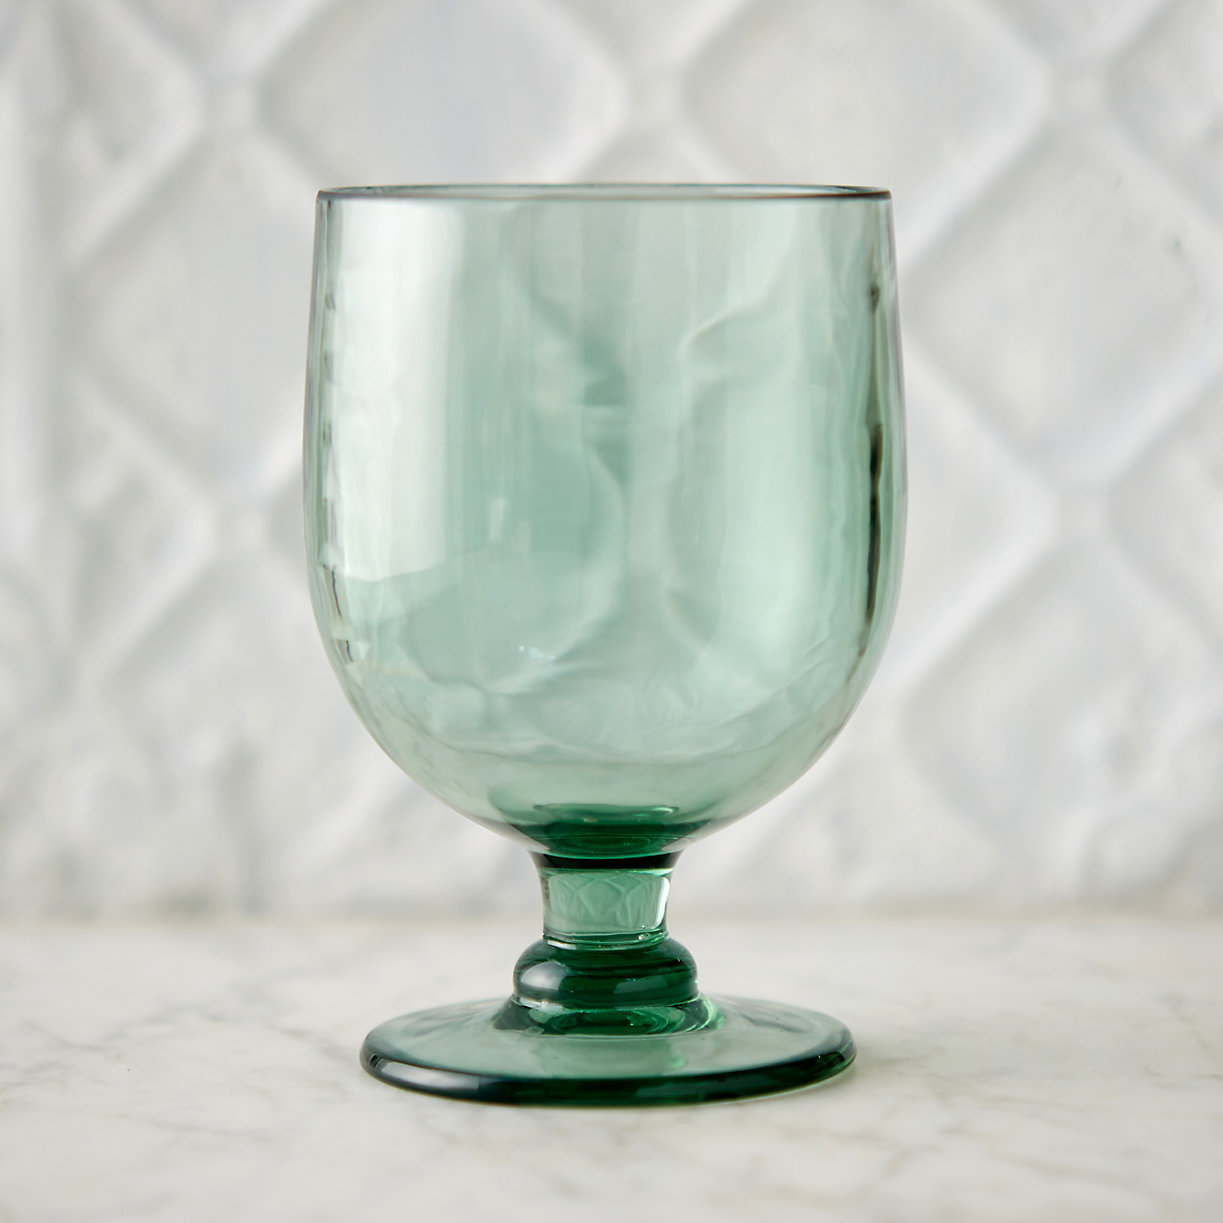 Picnic Wine Glass in House + Home Drinkware at Terrain